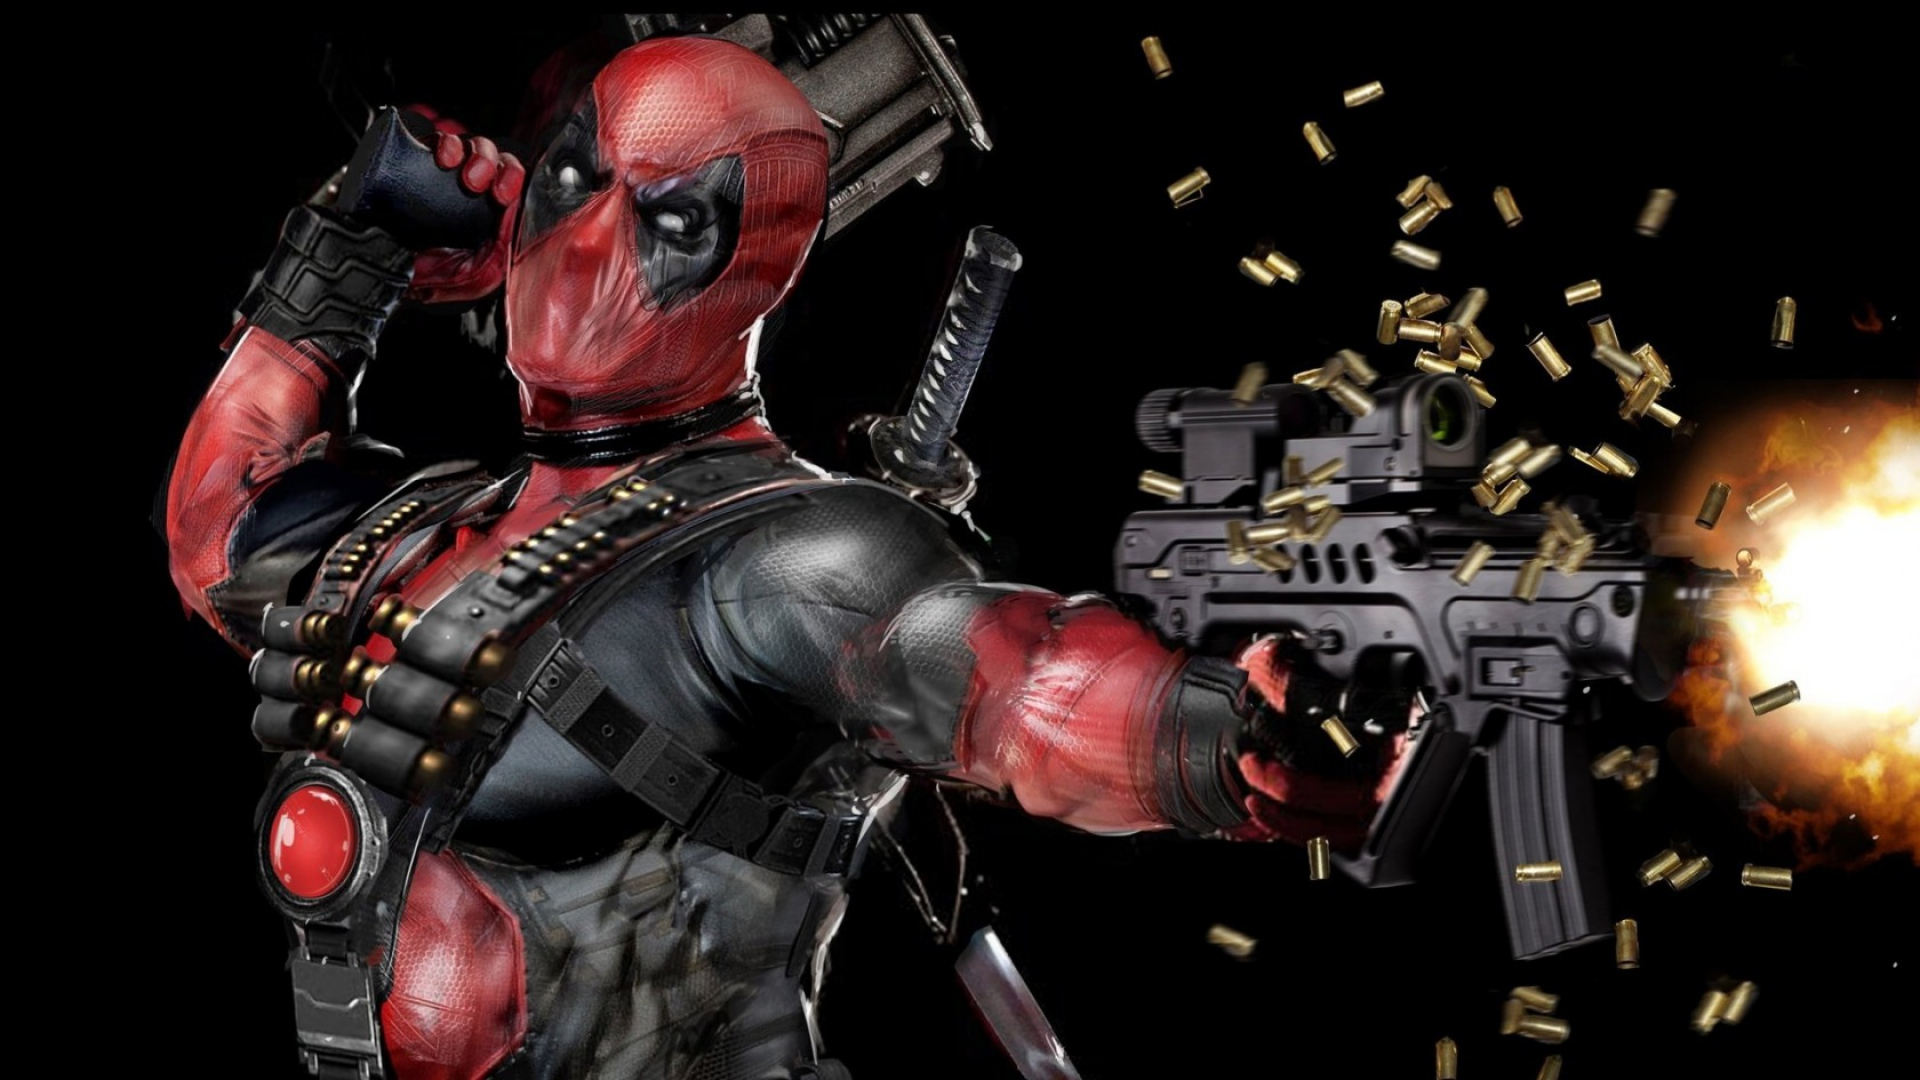 deadpool wallpaper hd 1080p - photo #14